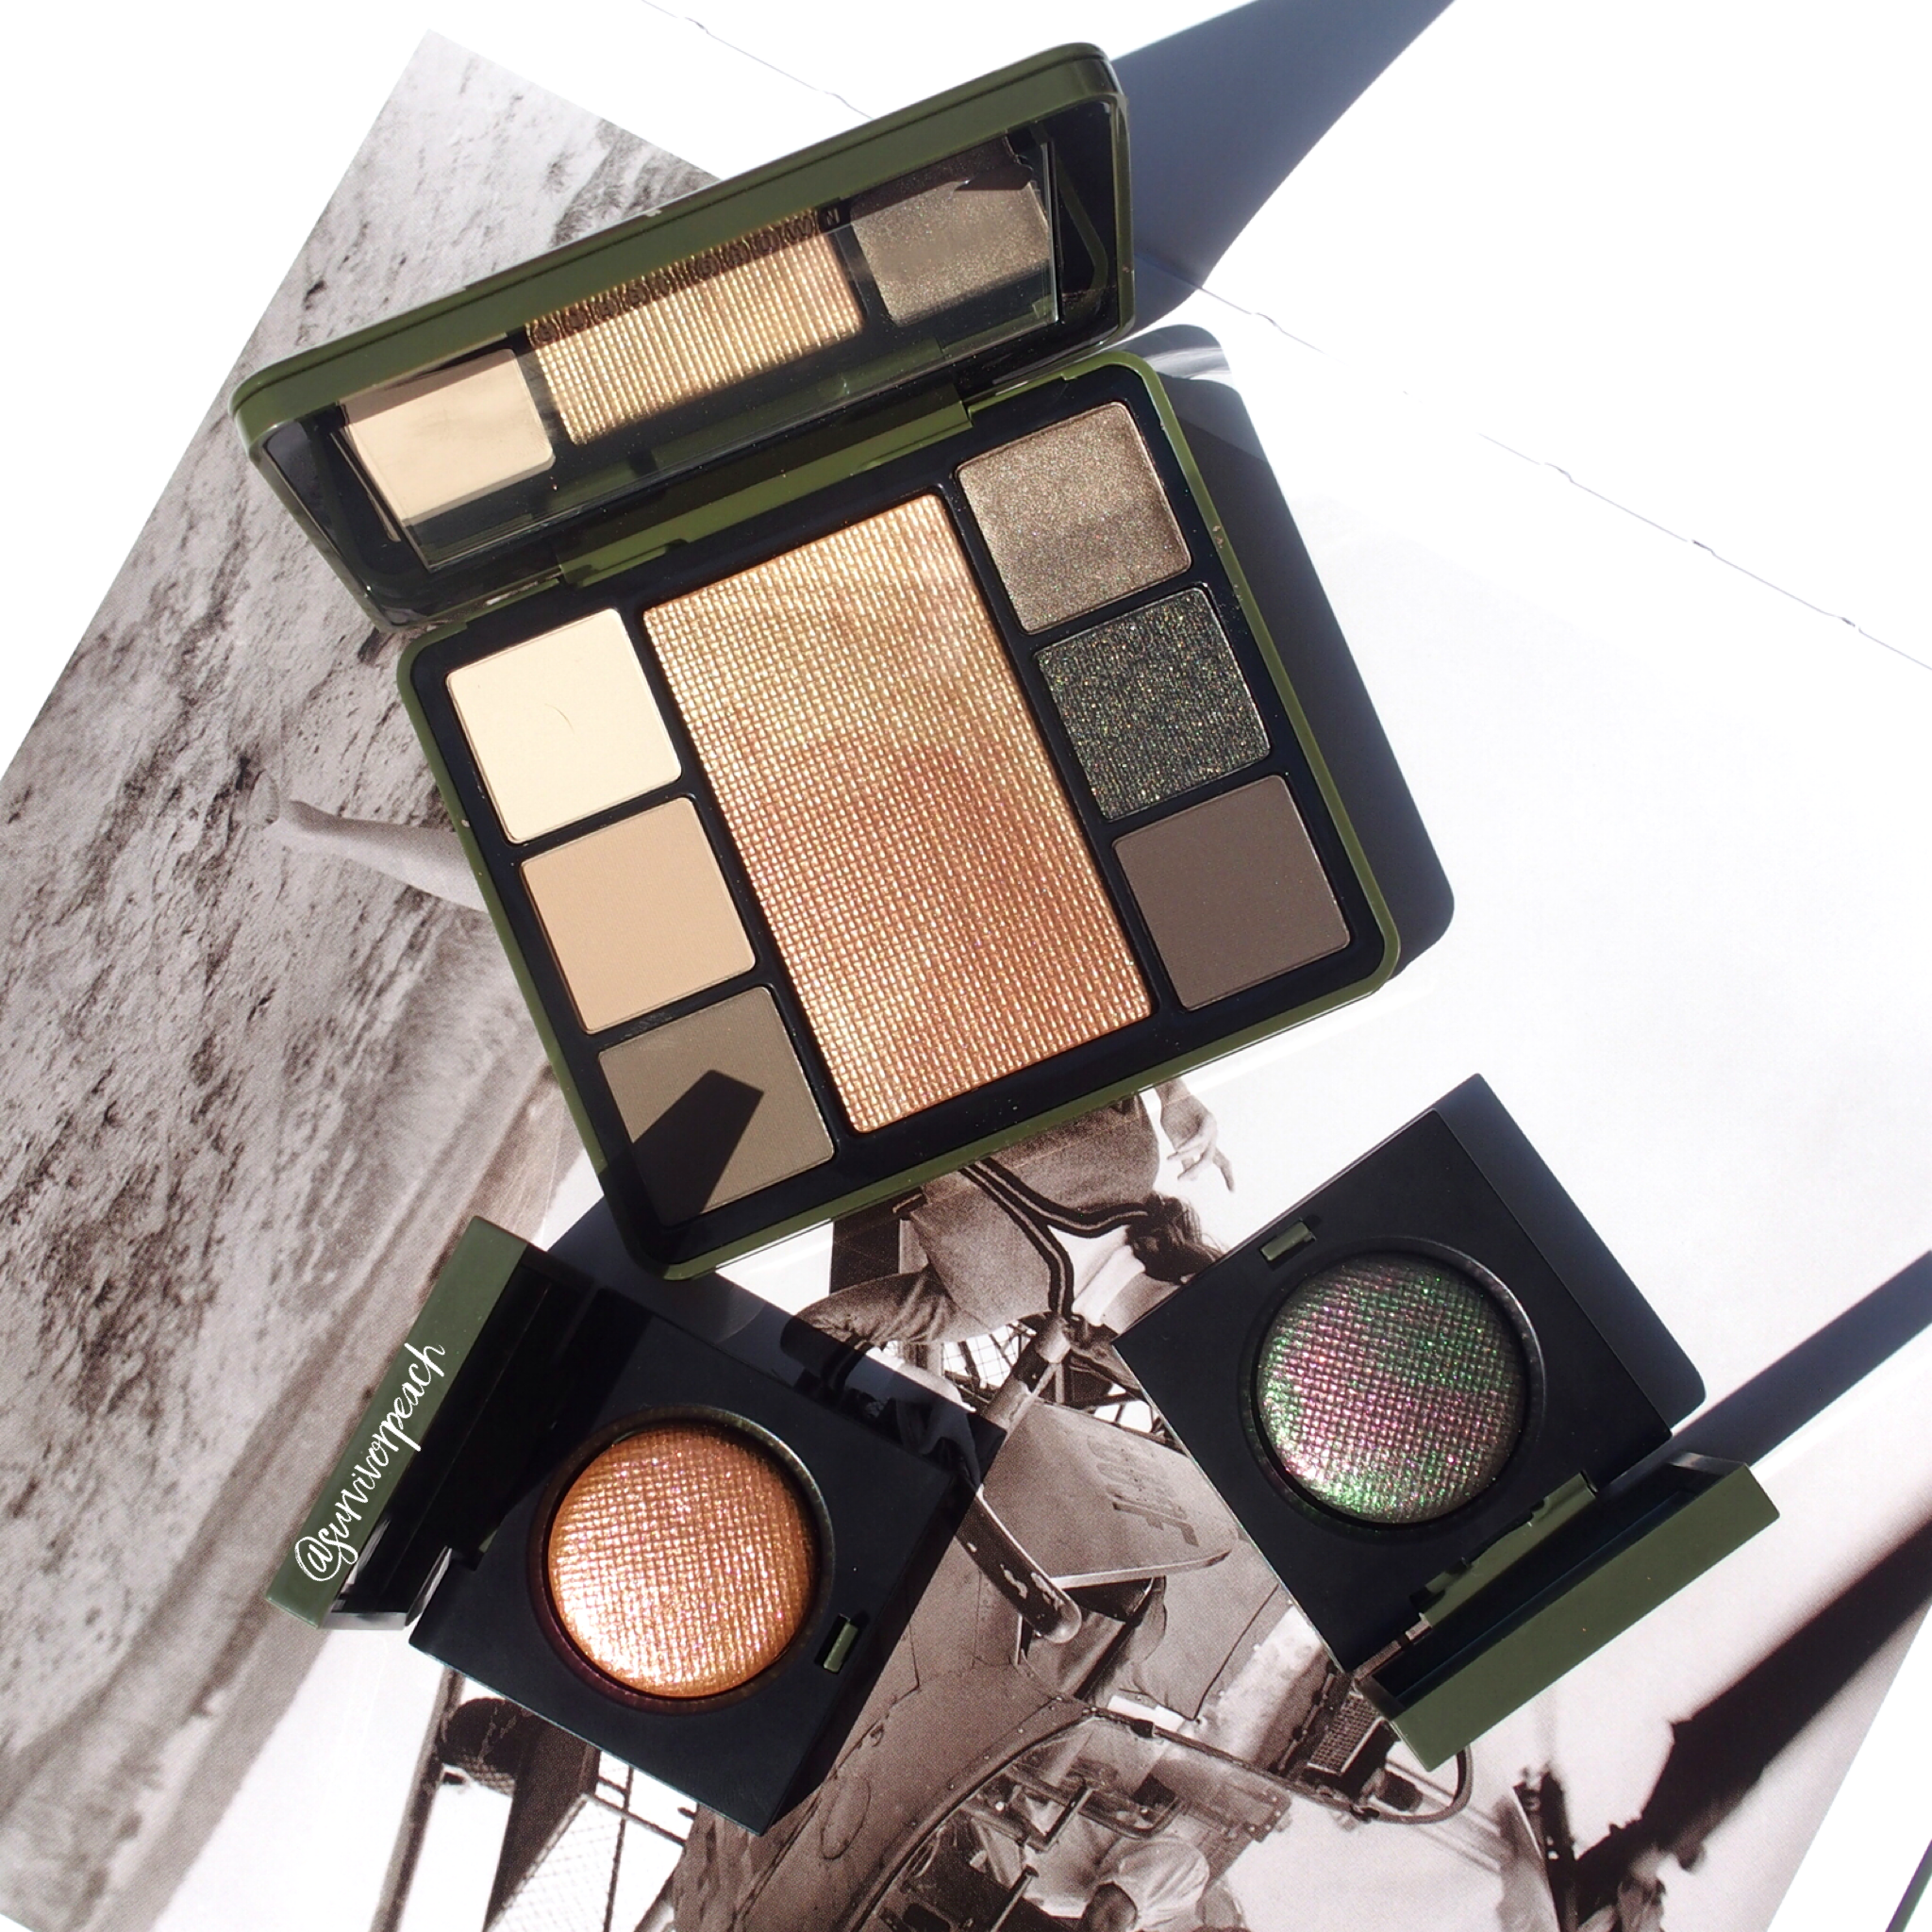 Bobbi Brown Camo Luxe Eye & Cheek palette and single shadows in Jungle and Incandescent